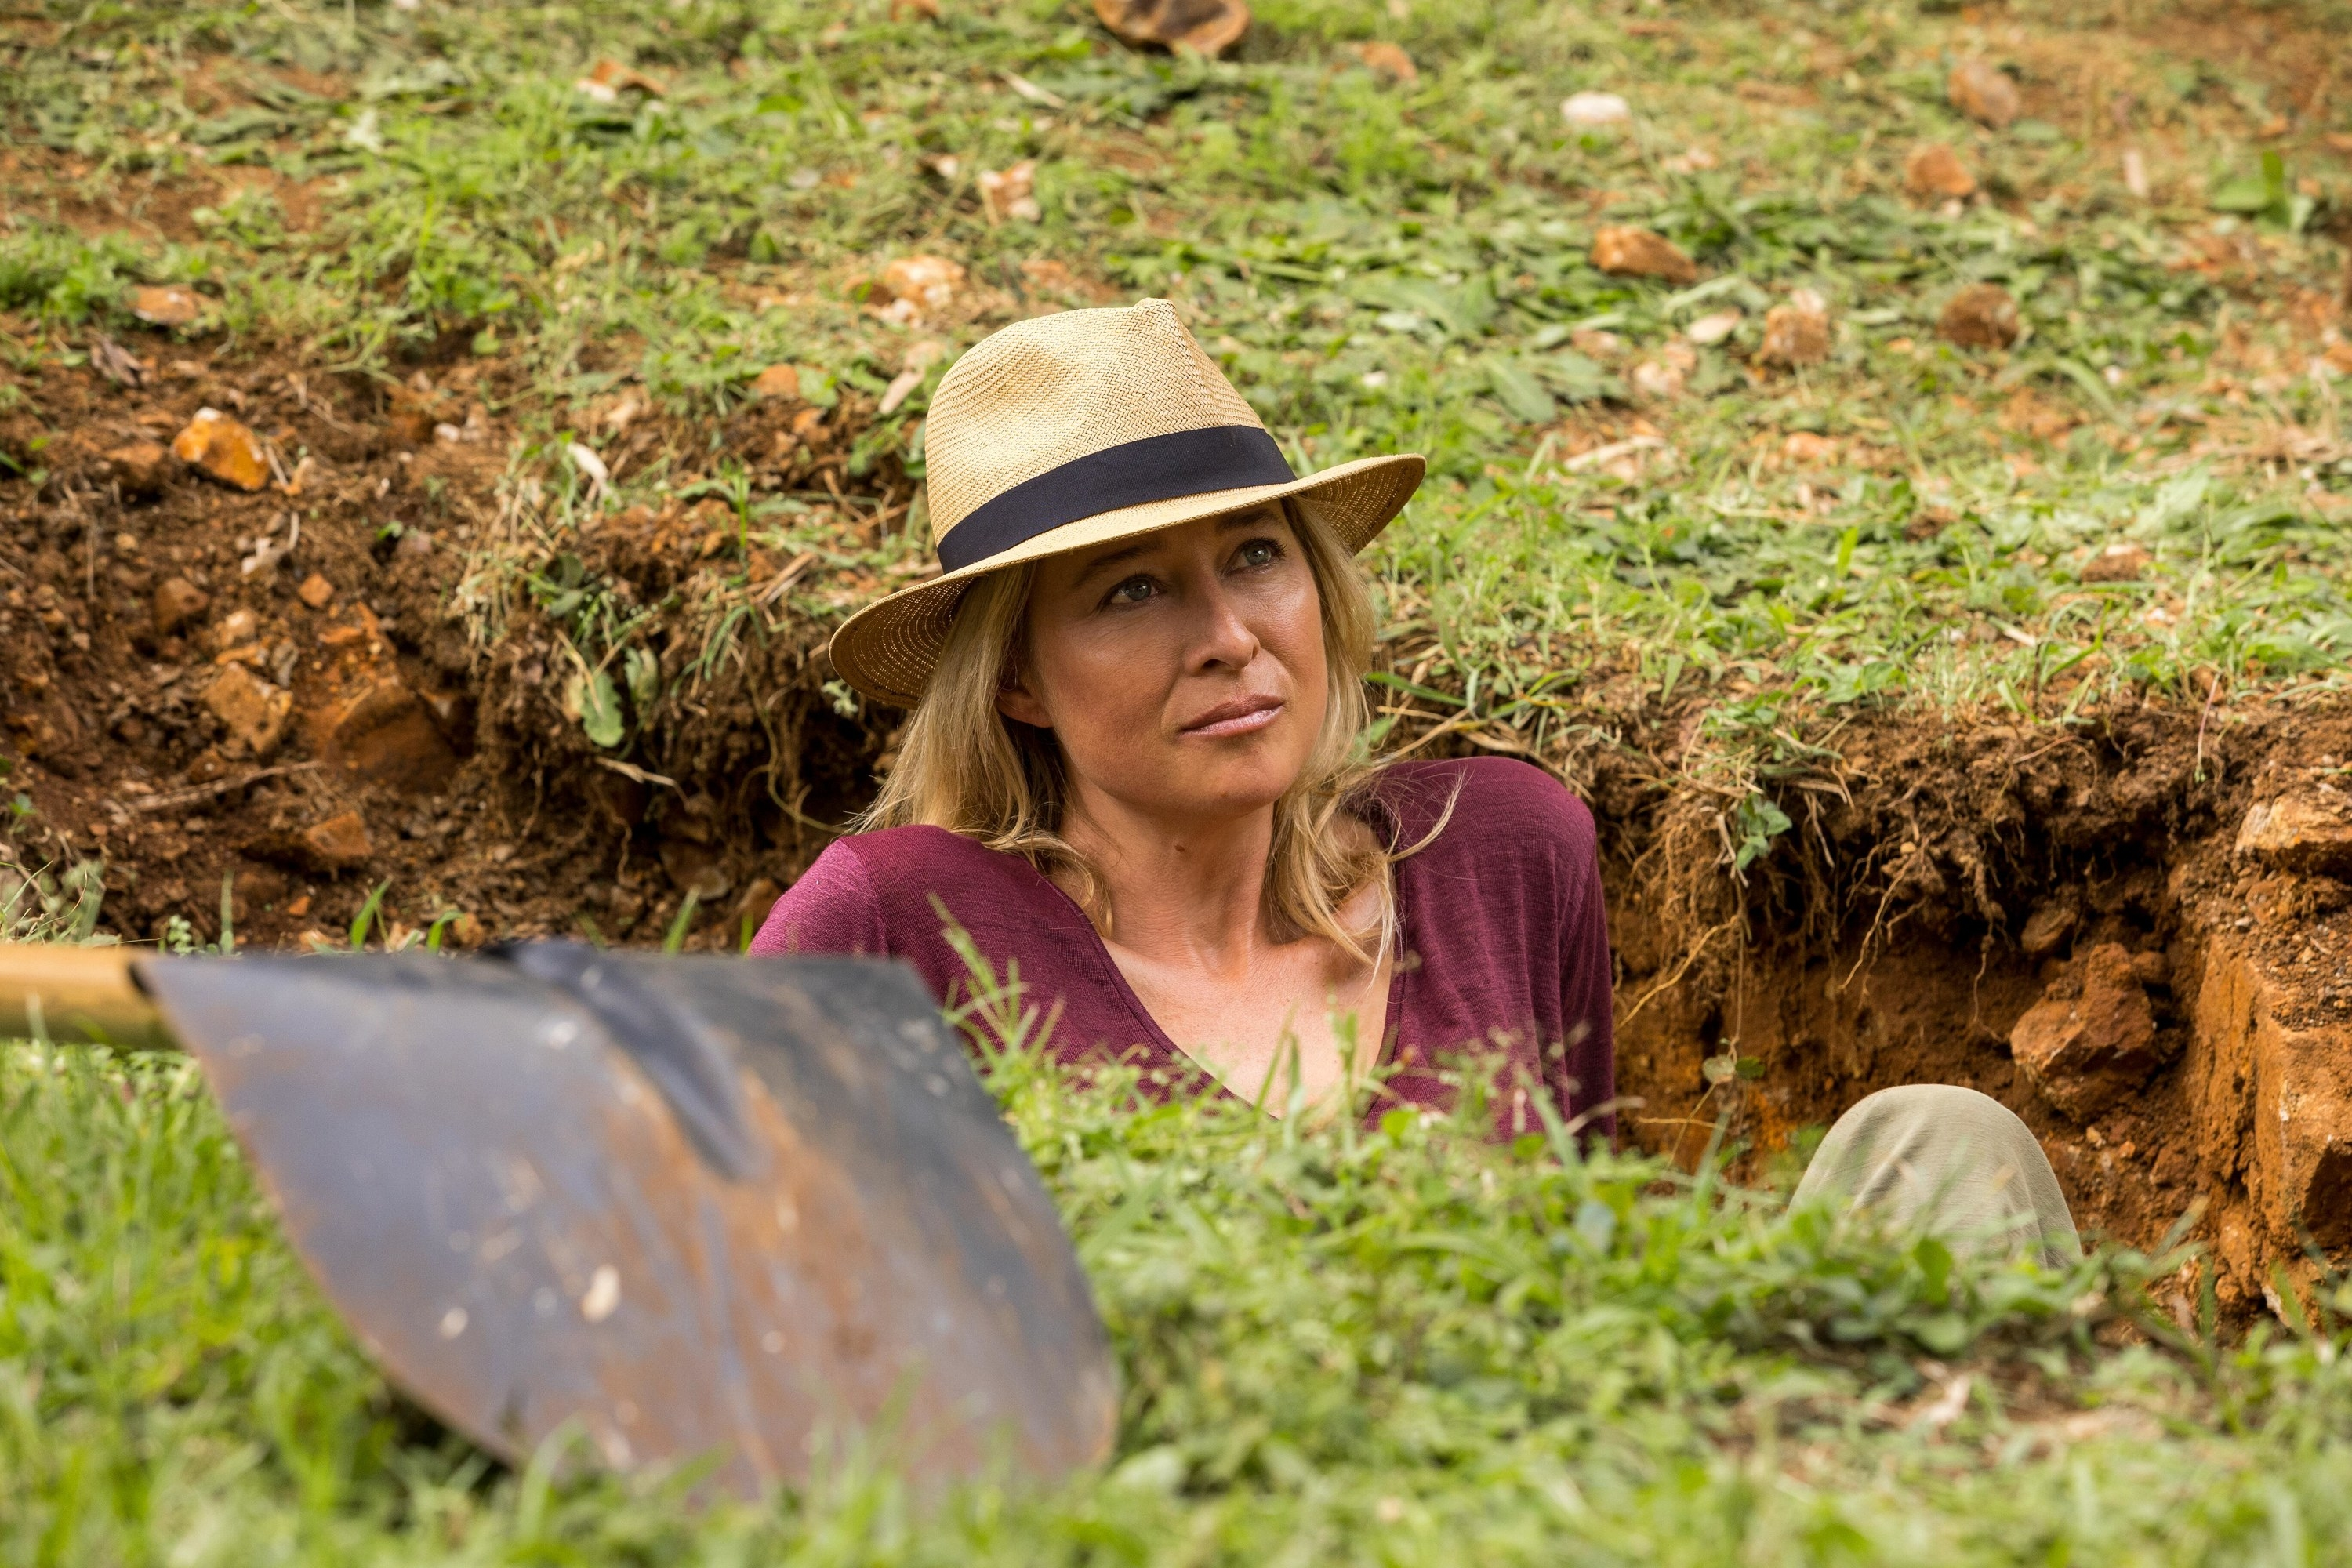 A woman sitting in a grave she dug